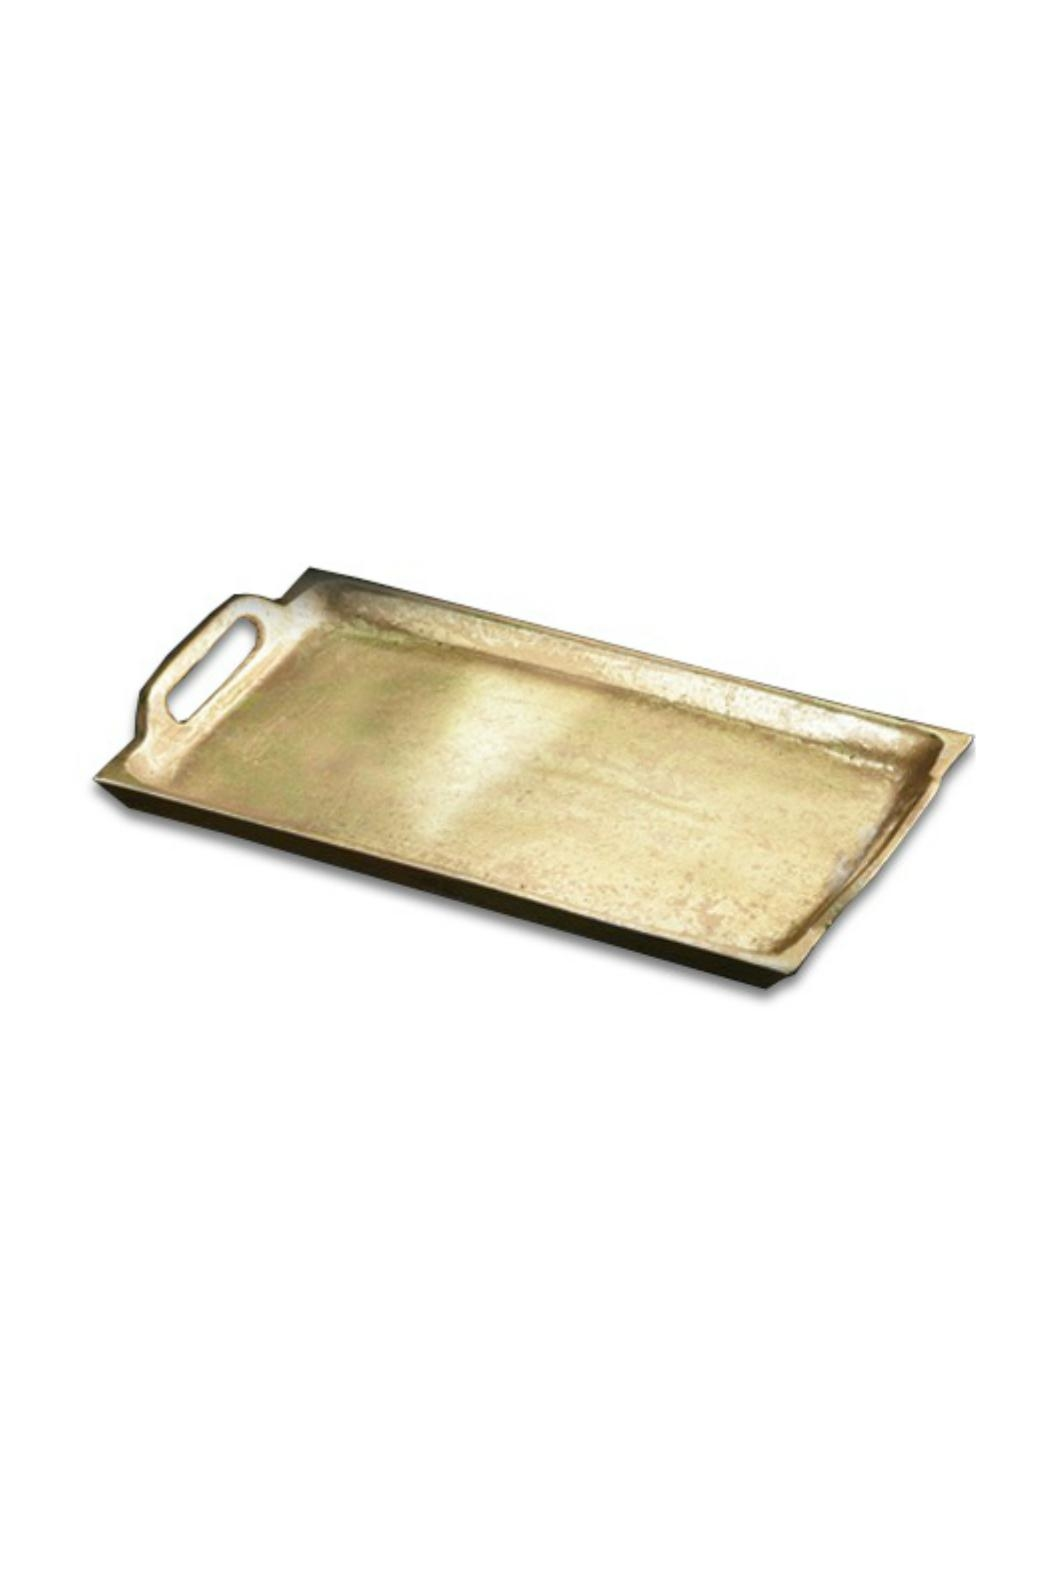 India Handicrafts Gilded-Tray With Handles - Main Image